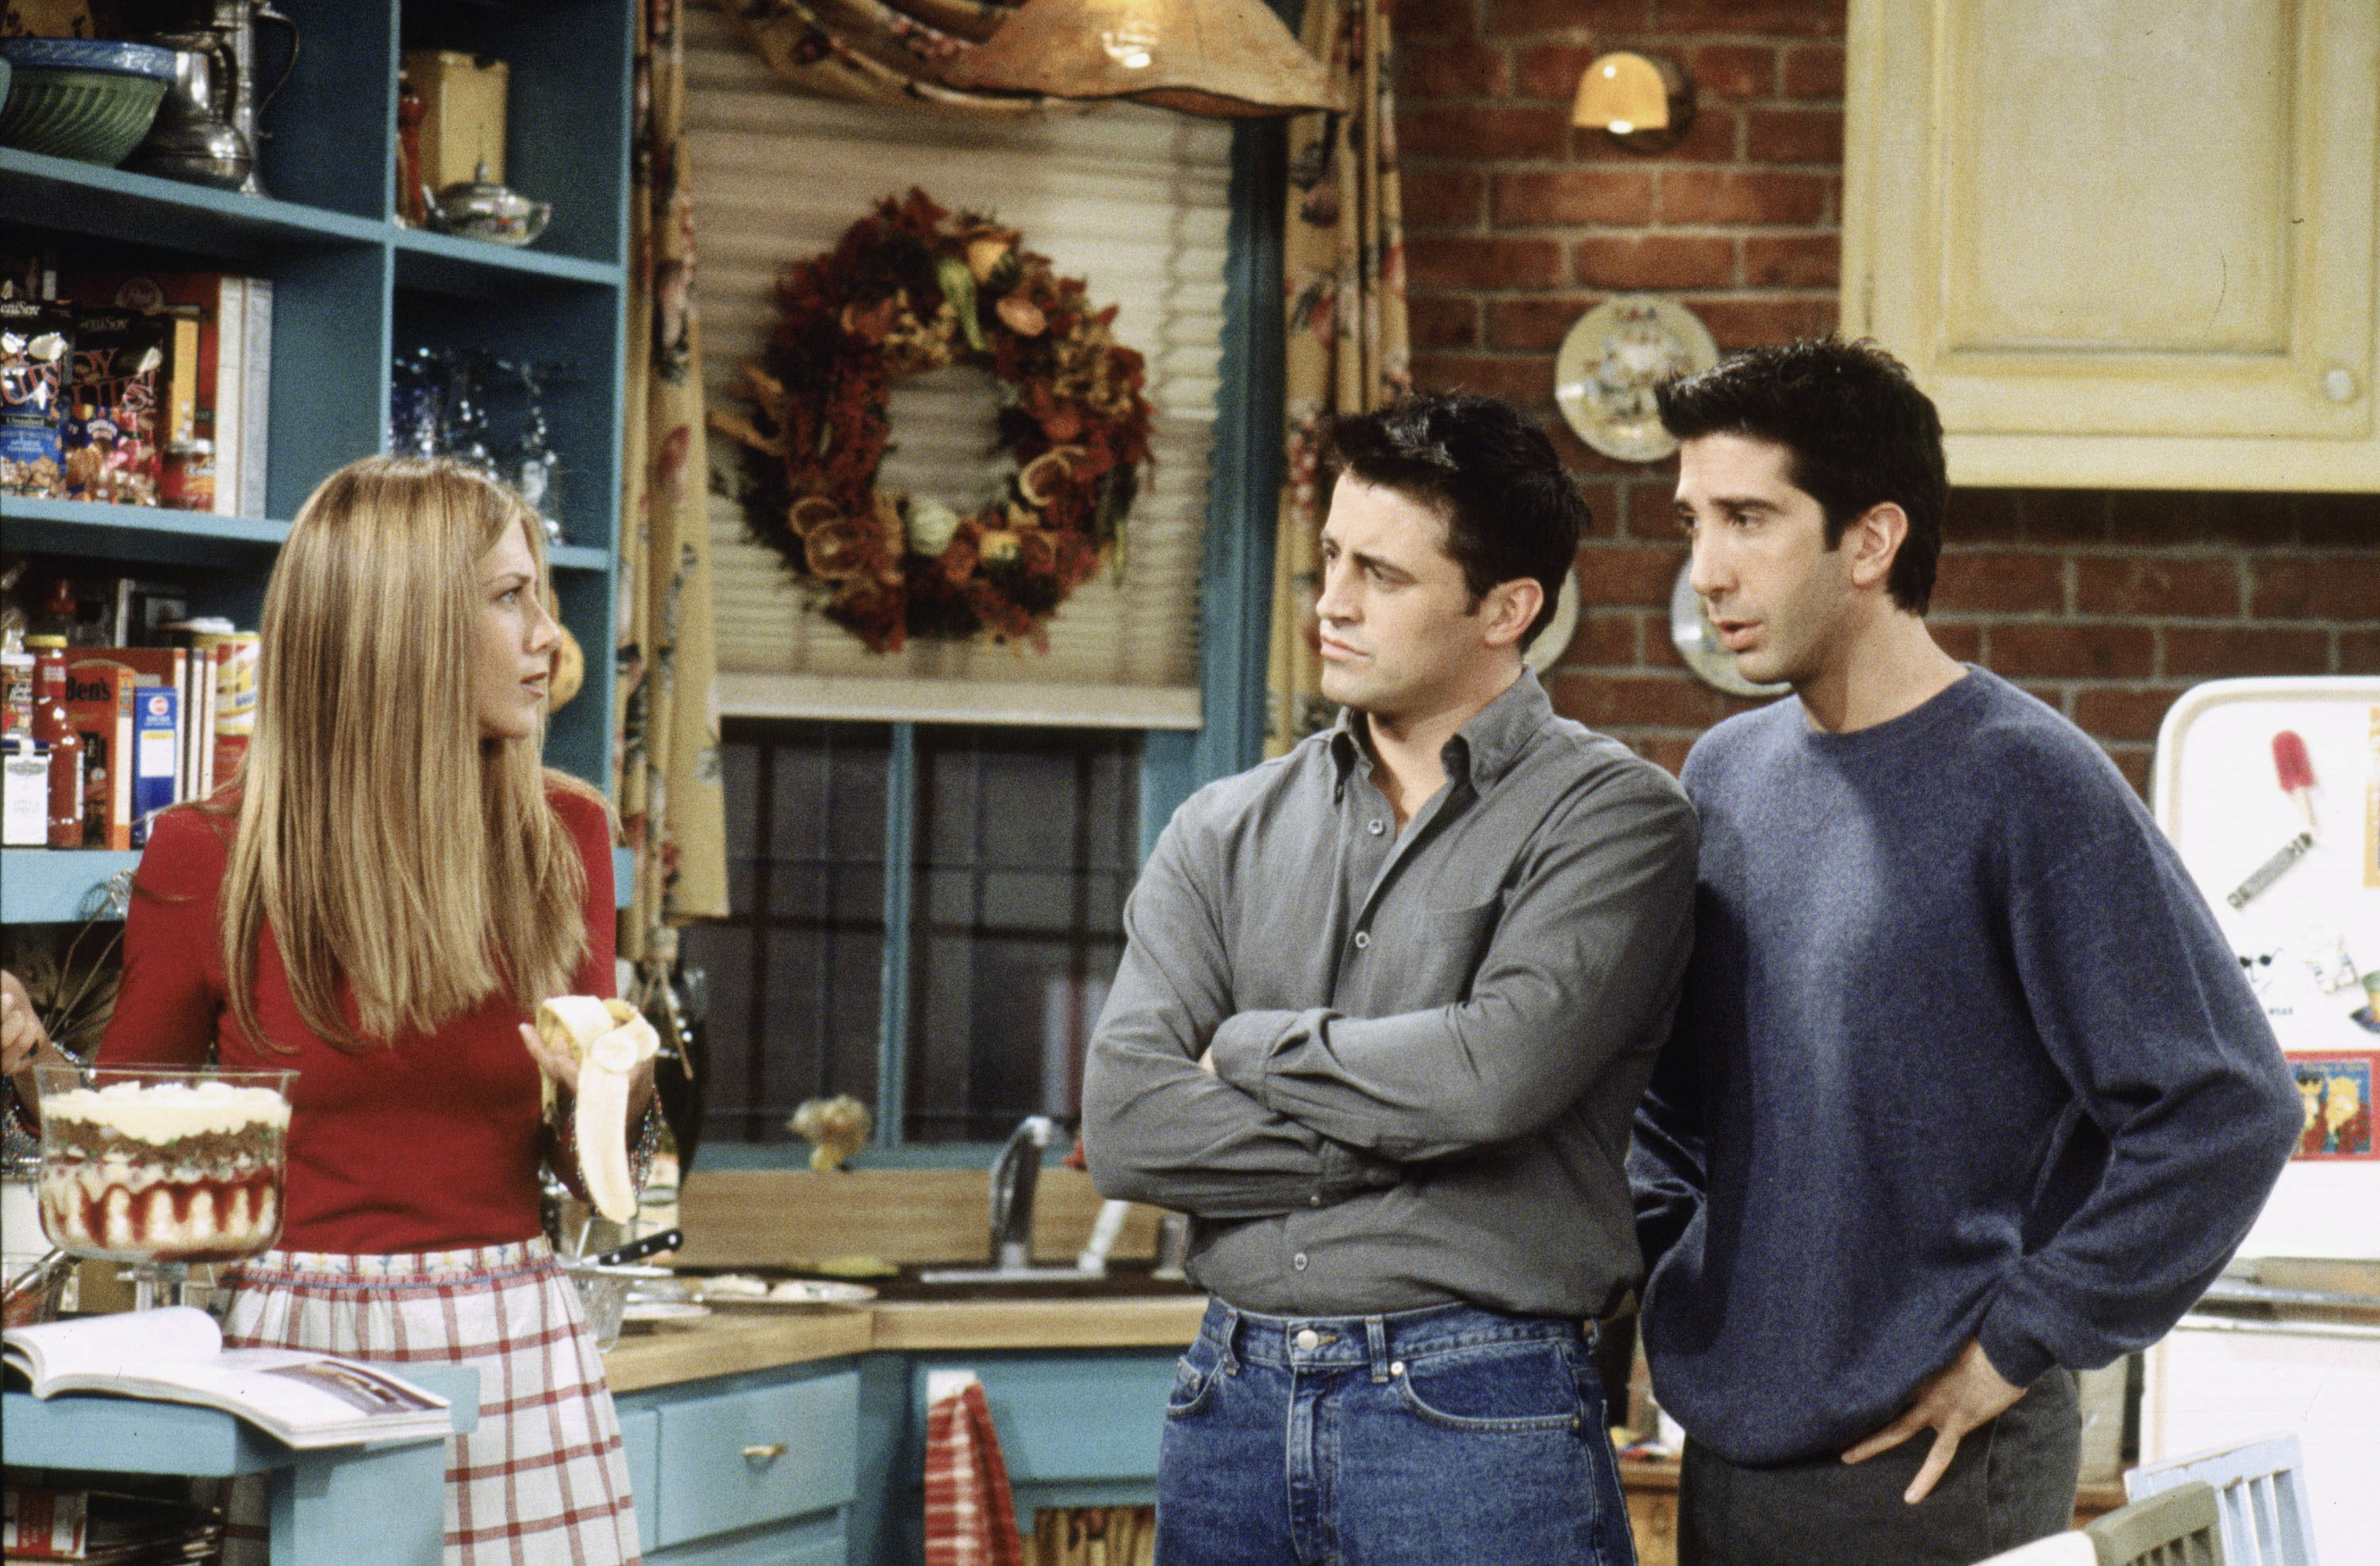 Apparently, that Thanksgiving trifle scene on <em>Friends</em> was a LOT grosser than it looked